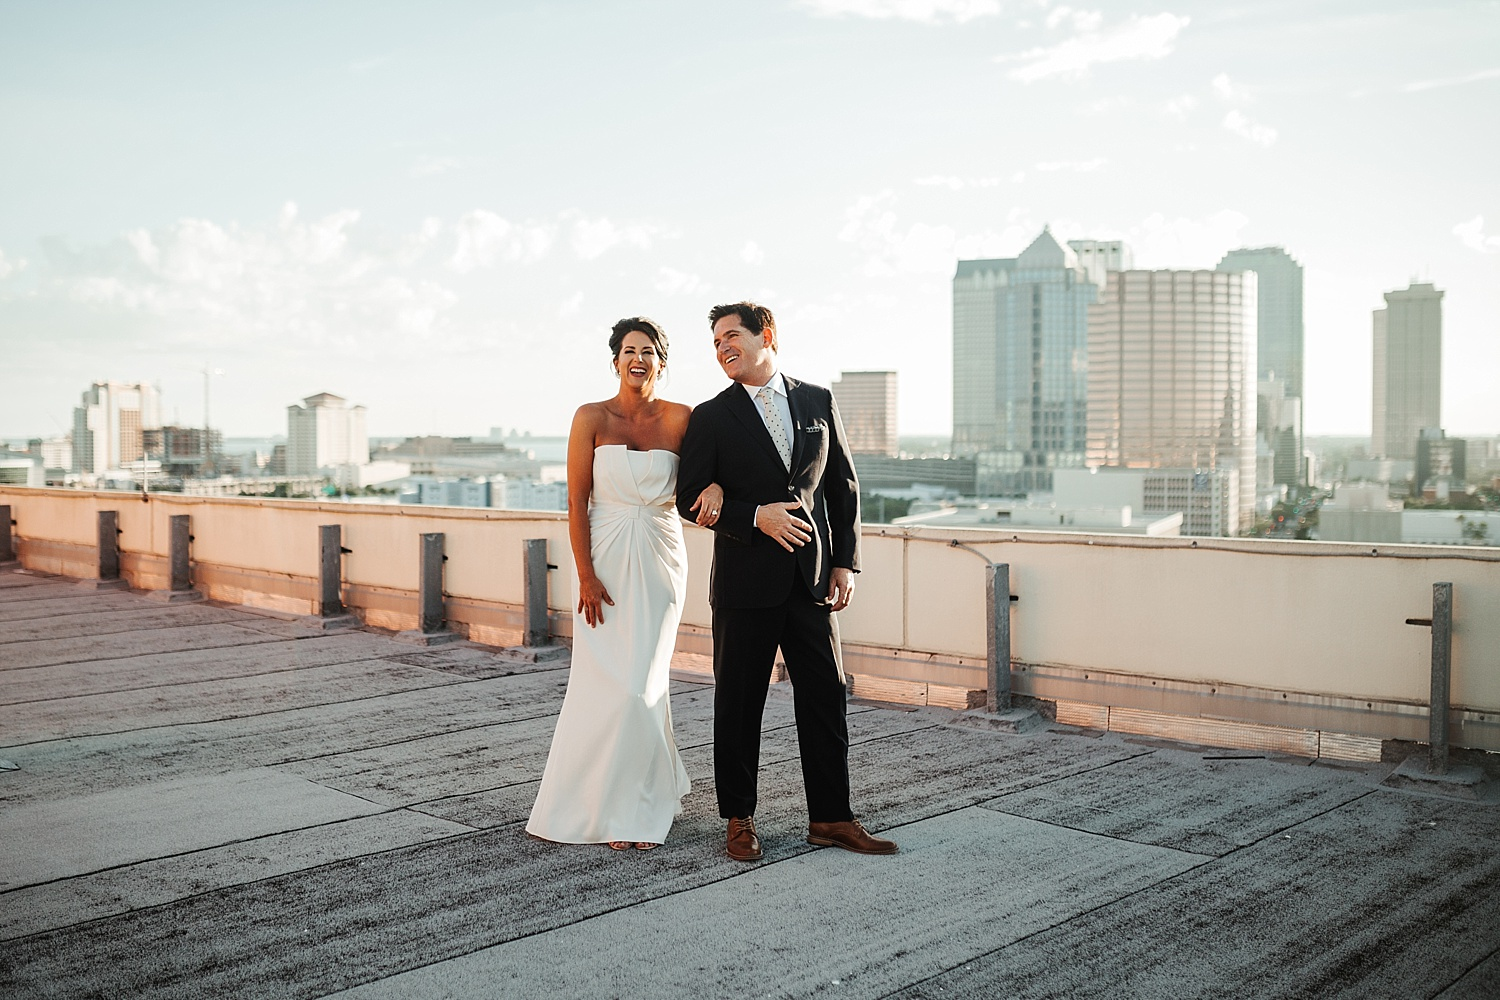 Don Me Now, Rooftop Anniversary Sessions, Rooftop Pictures Tampa, Ashley Izquierdo, Tampa Proposal Photographer, Tampa Couples Sessions, Tampa Wedding Photographers, Tampa Photographer, Tampa Wedding Photographer, Florida Wedding Photographer, Channelside Couples Pictures, Bubbly Barchique, Tampa Engagement Session Photos, Tampa Engagement Ideas